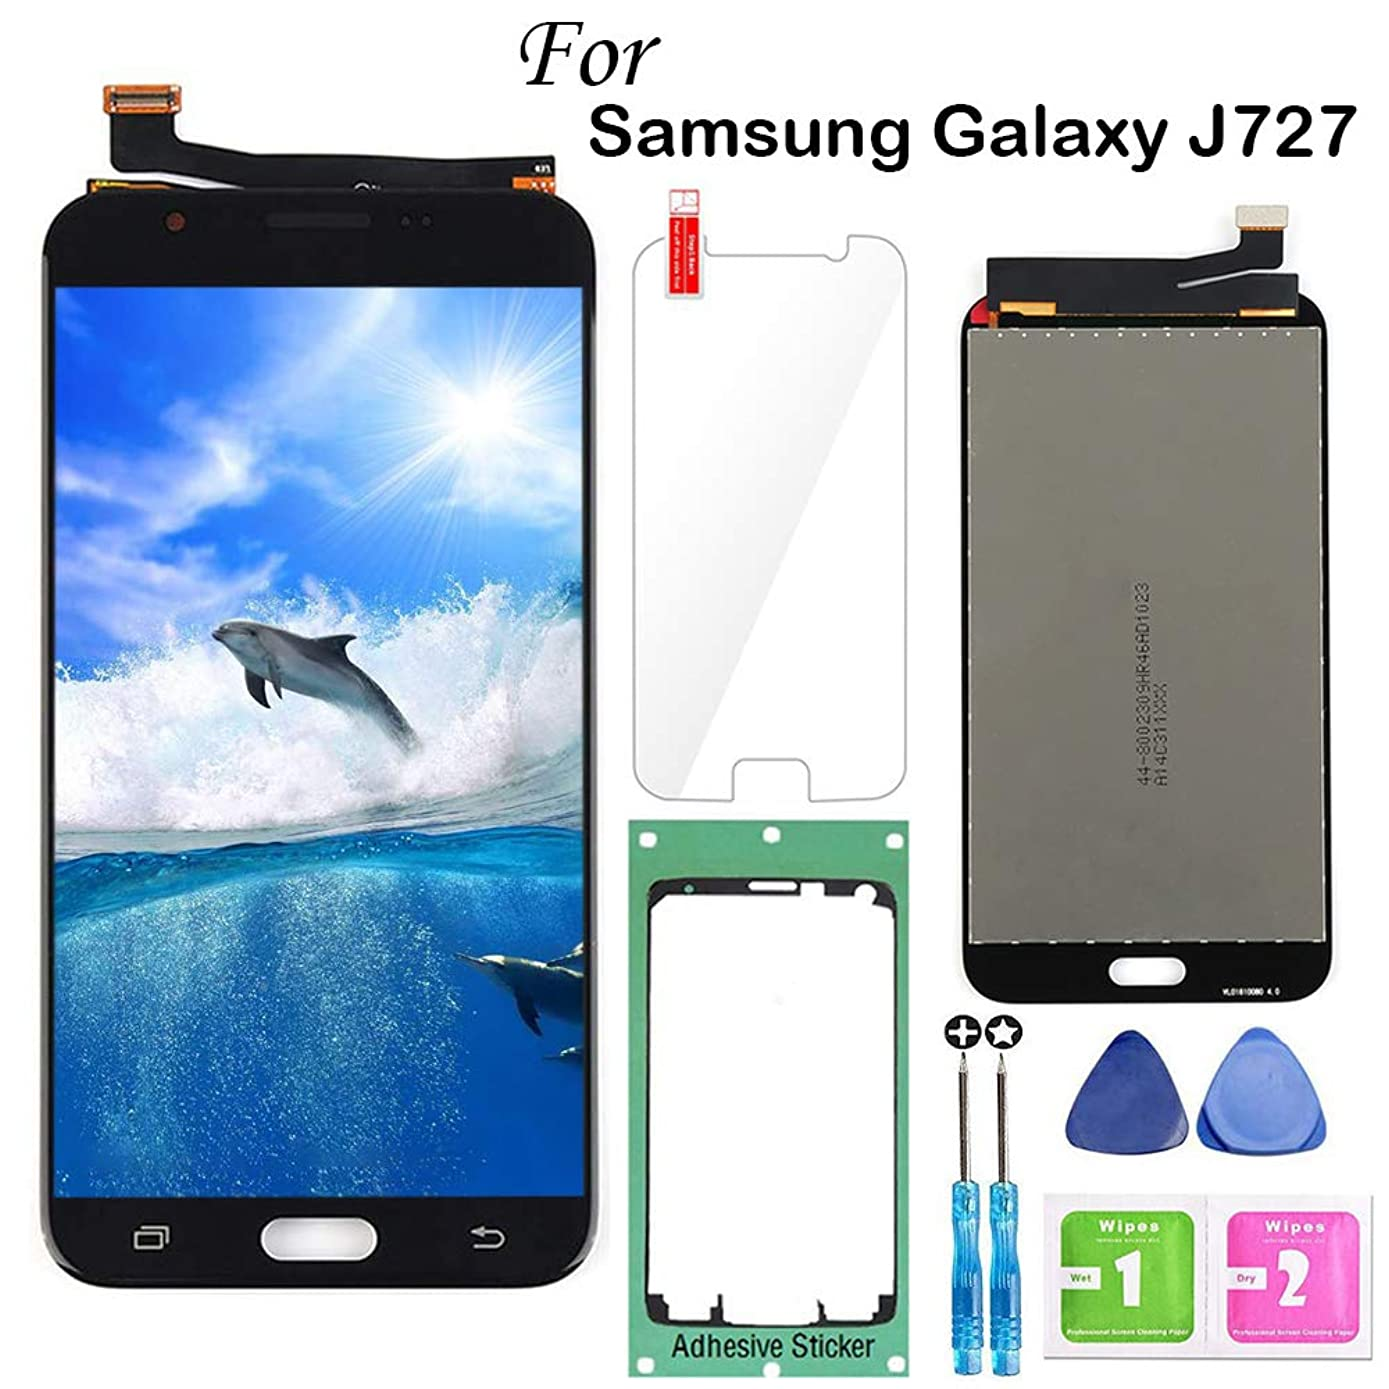 for Samsung Galaxy J7 2017 Screen Replacement Black,LCD Display Touch Screen Digitizer Assembly for J7 Prime 2017 J727 J727U SM-J727T1 J727R4 J727V J727P Sky Pro J7 2017 Perx 5.5